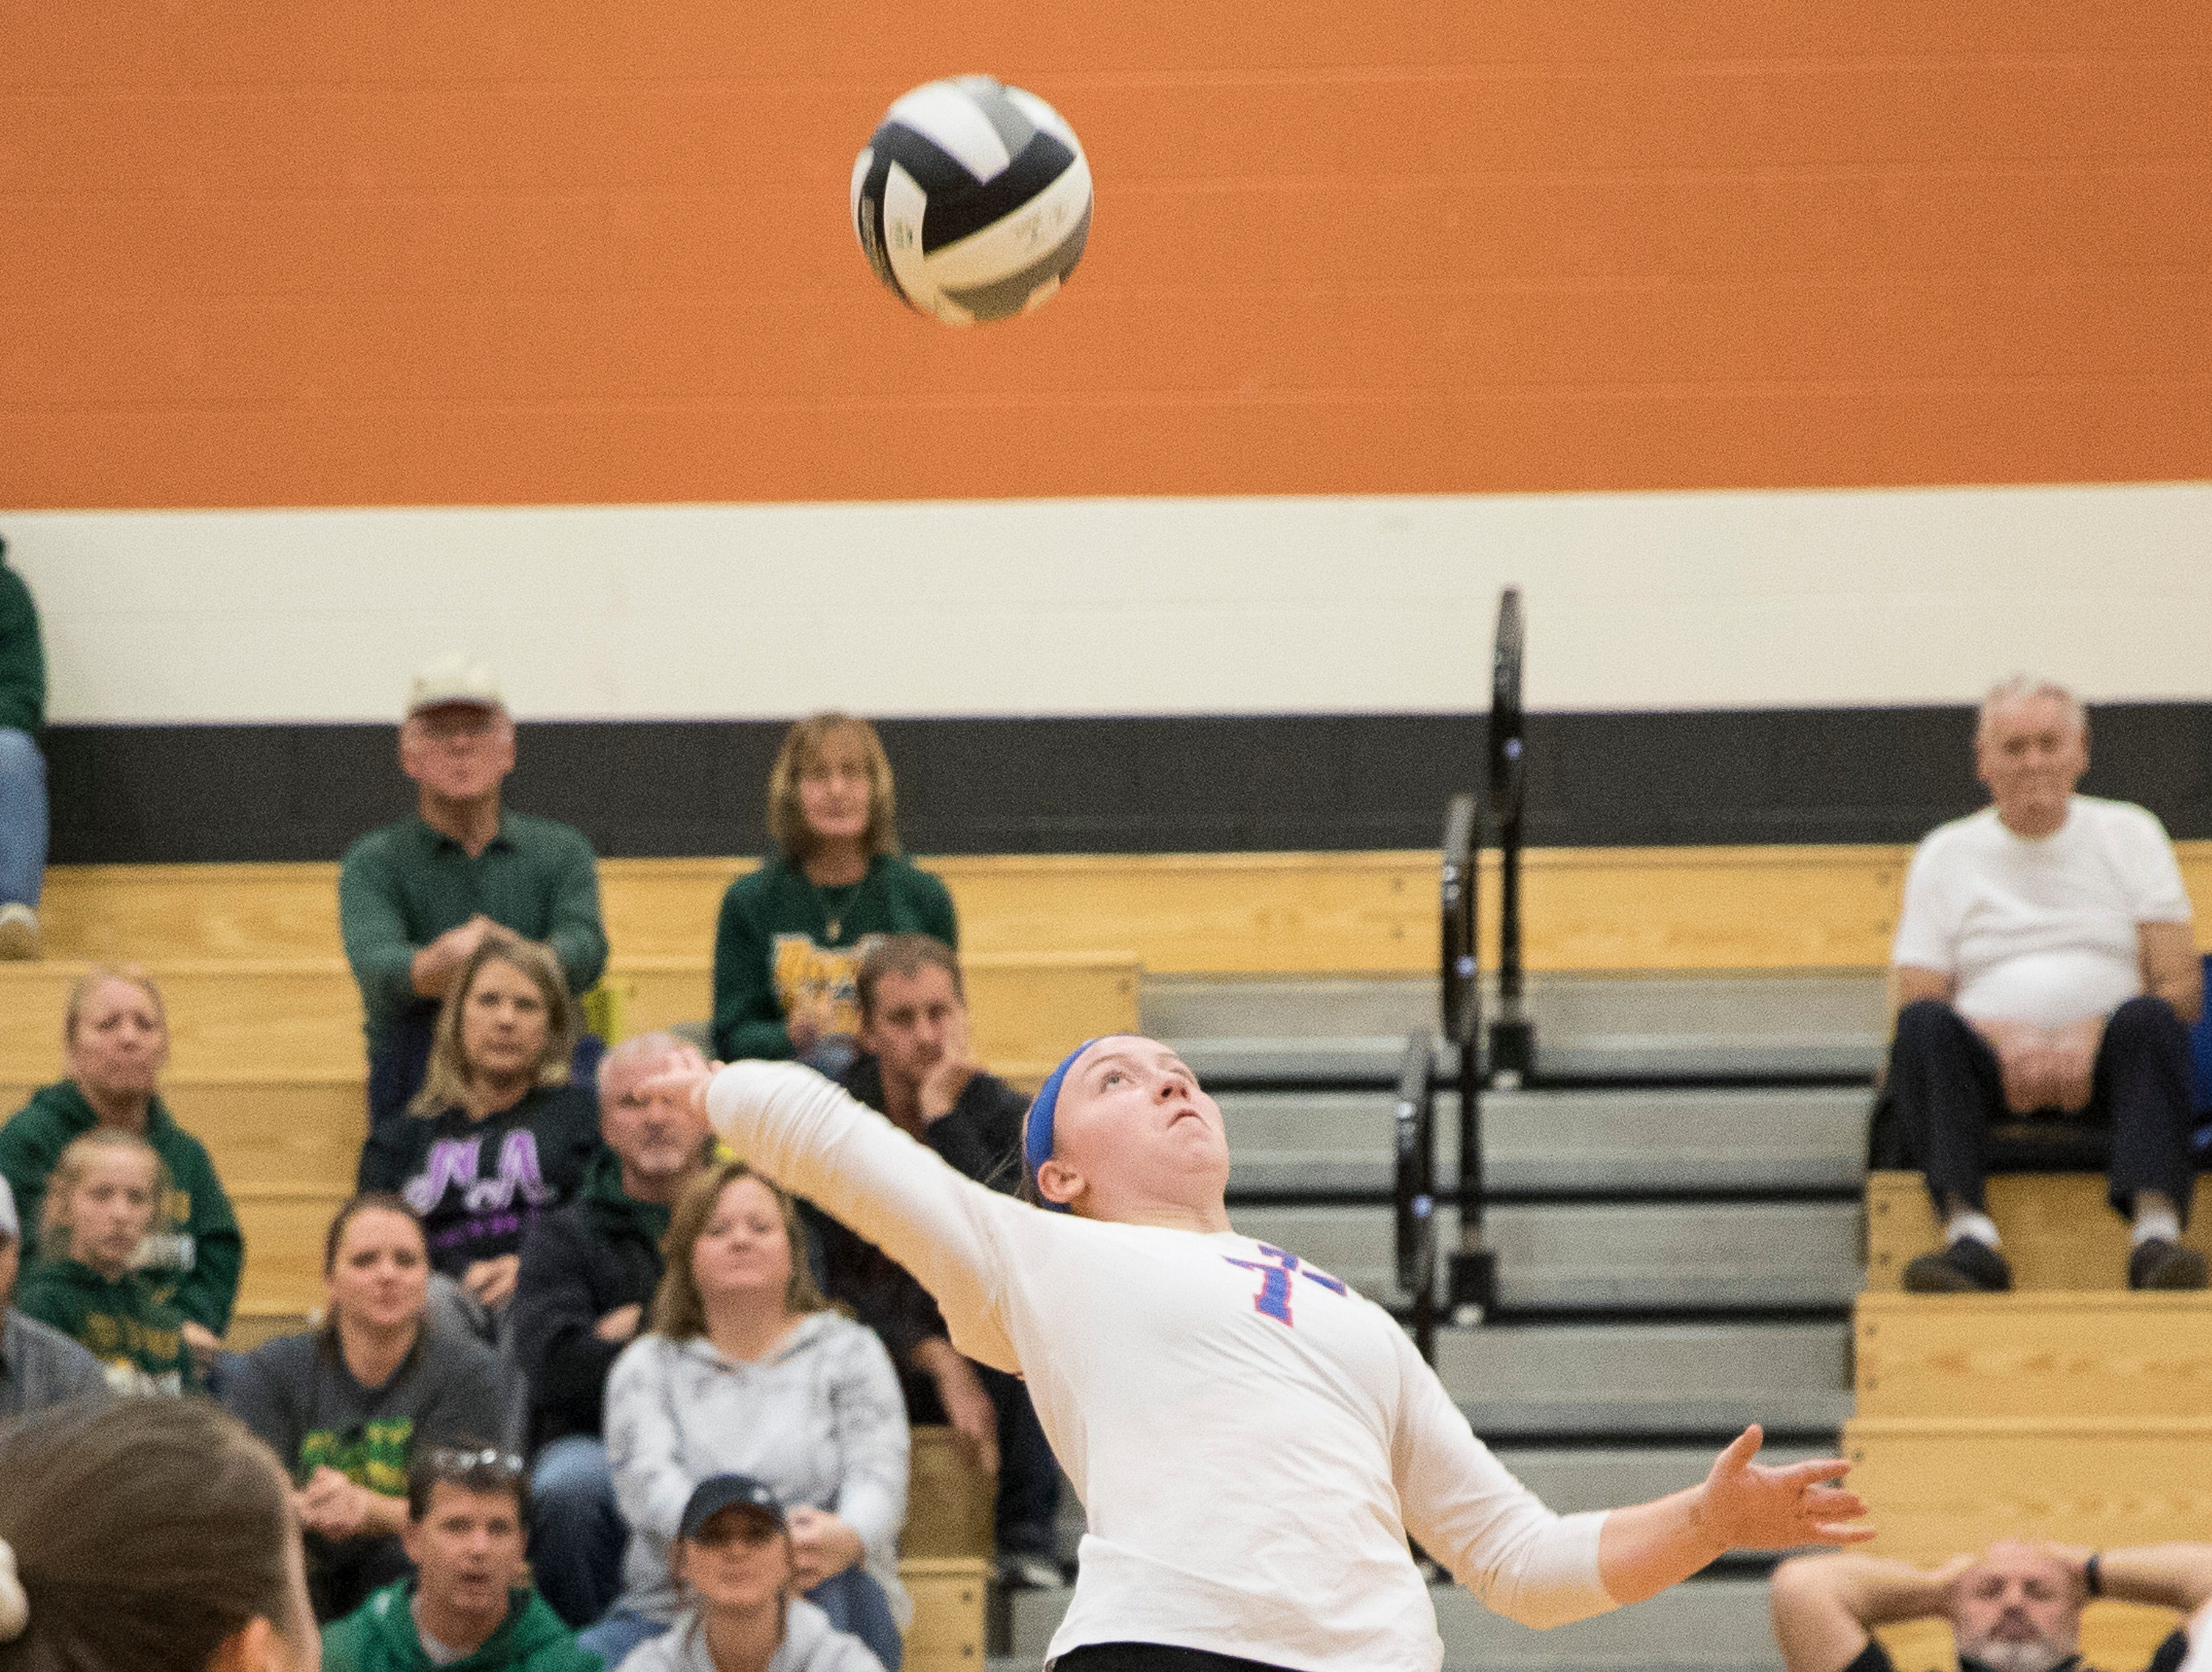 Zane Trace defeated North Adams Wednesday night 3-0 at Waverly High School in Waverly, Ohio, advancing them to the district finals in Division III against Southeastern Saturday.